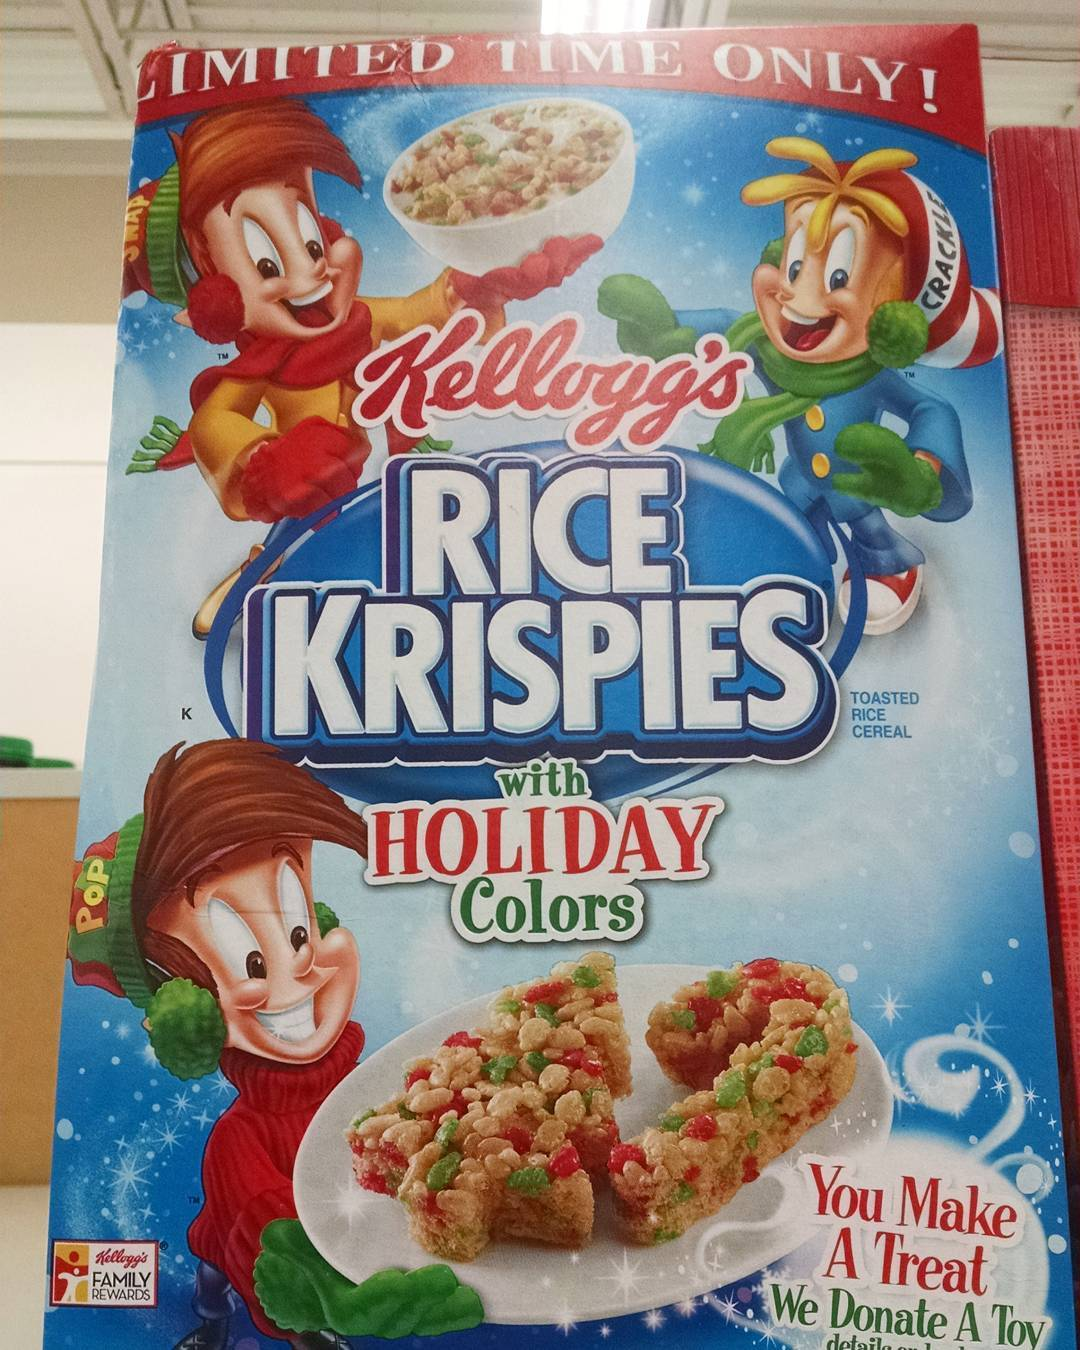 Holiday cerealously part 3 kelloggs rice krispies with holiday colors cereal box 2016 ccuart Image collections